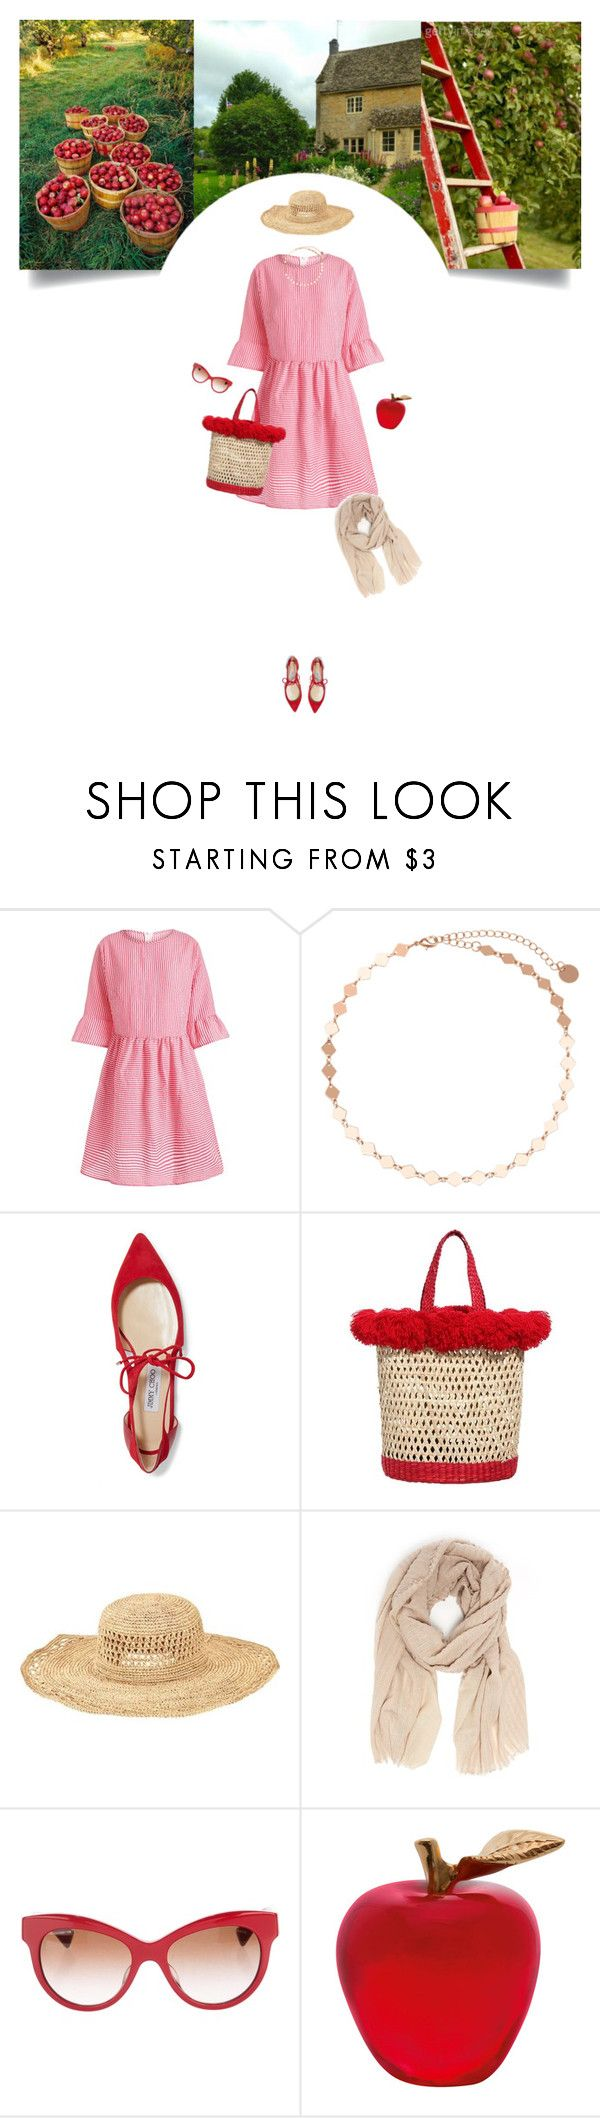 """""""Harvest Time: Apple Picking"""" by soledestate ❤ liked on Polyvore featuring Jimmy Choo, Nannacay, San Diego Hat Co., Faliero Sarti, Dolce&Gabbana, Daum and country"""